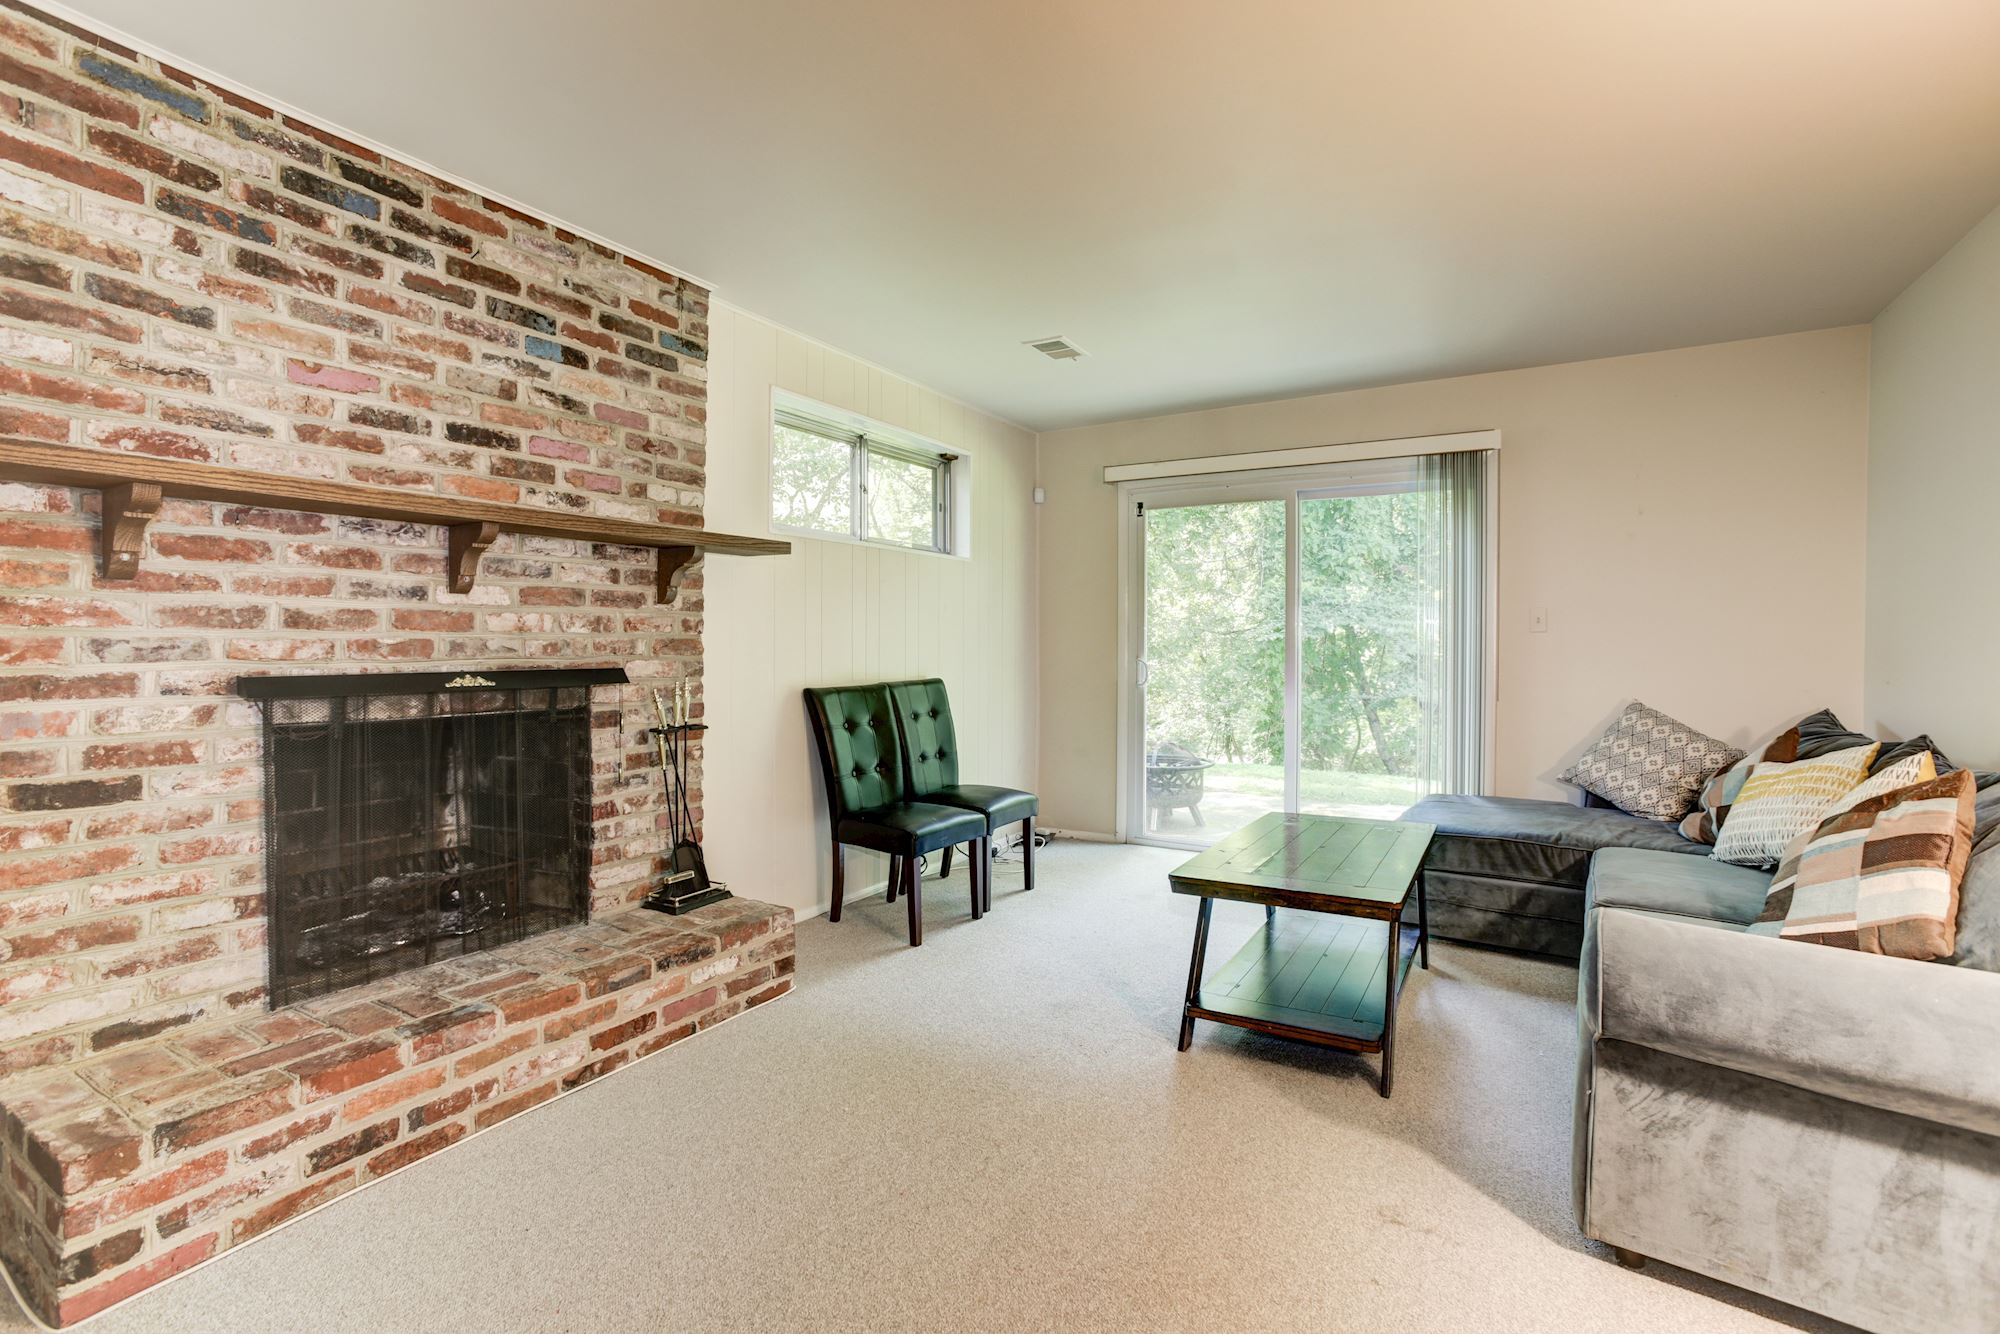 NEW LISTING: 5 BD Bright Spacious Rambler Home in Rockville,MD